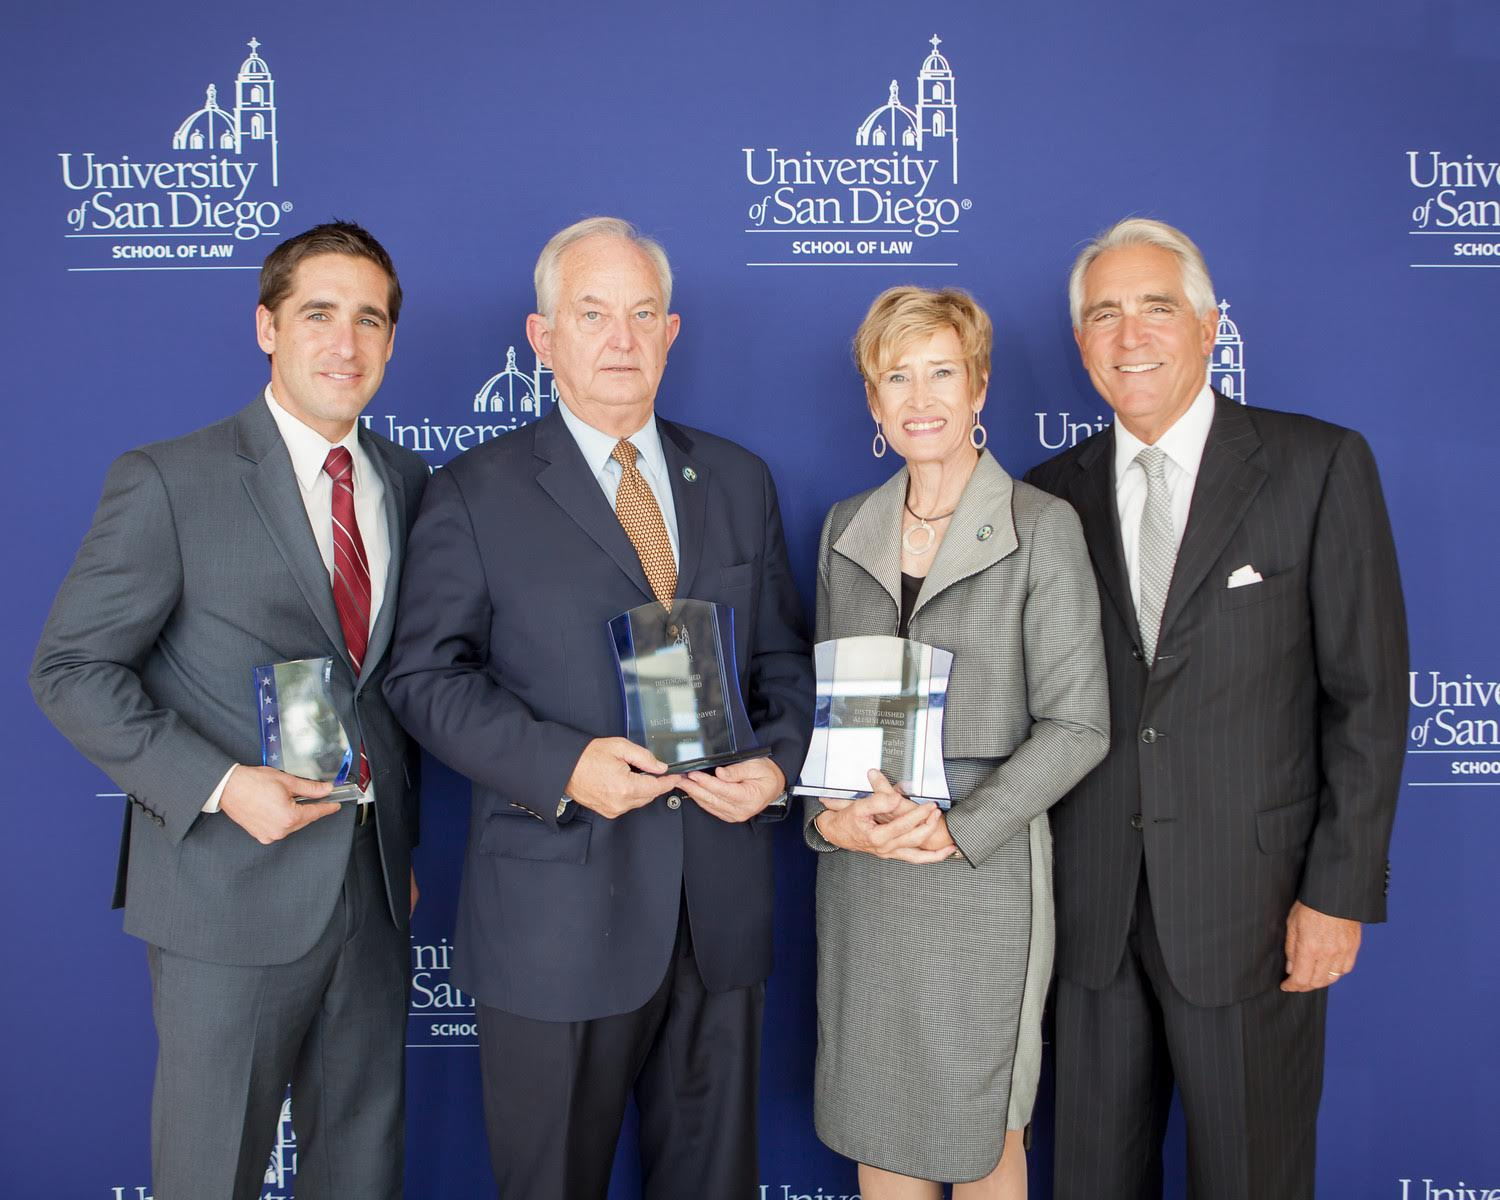 Fox Law Awards and Contributions